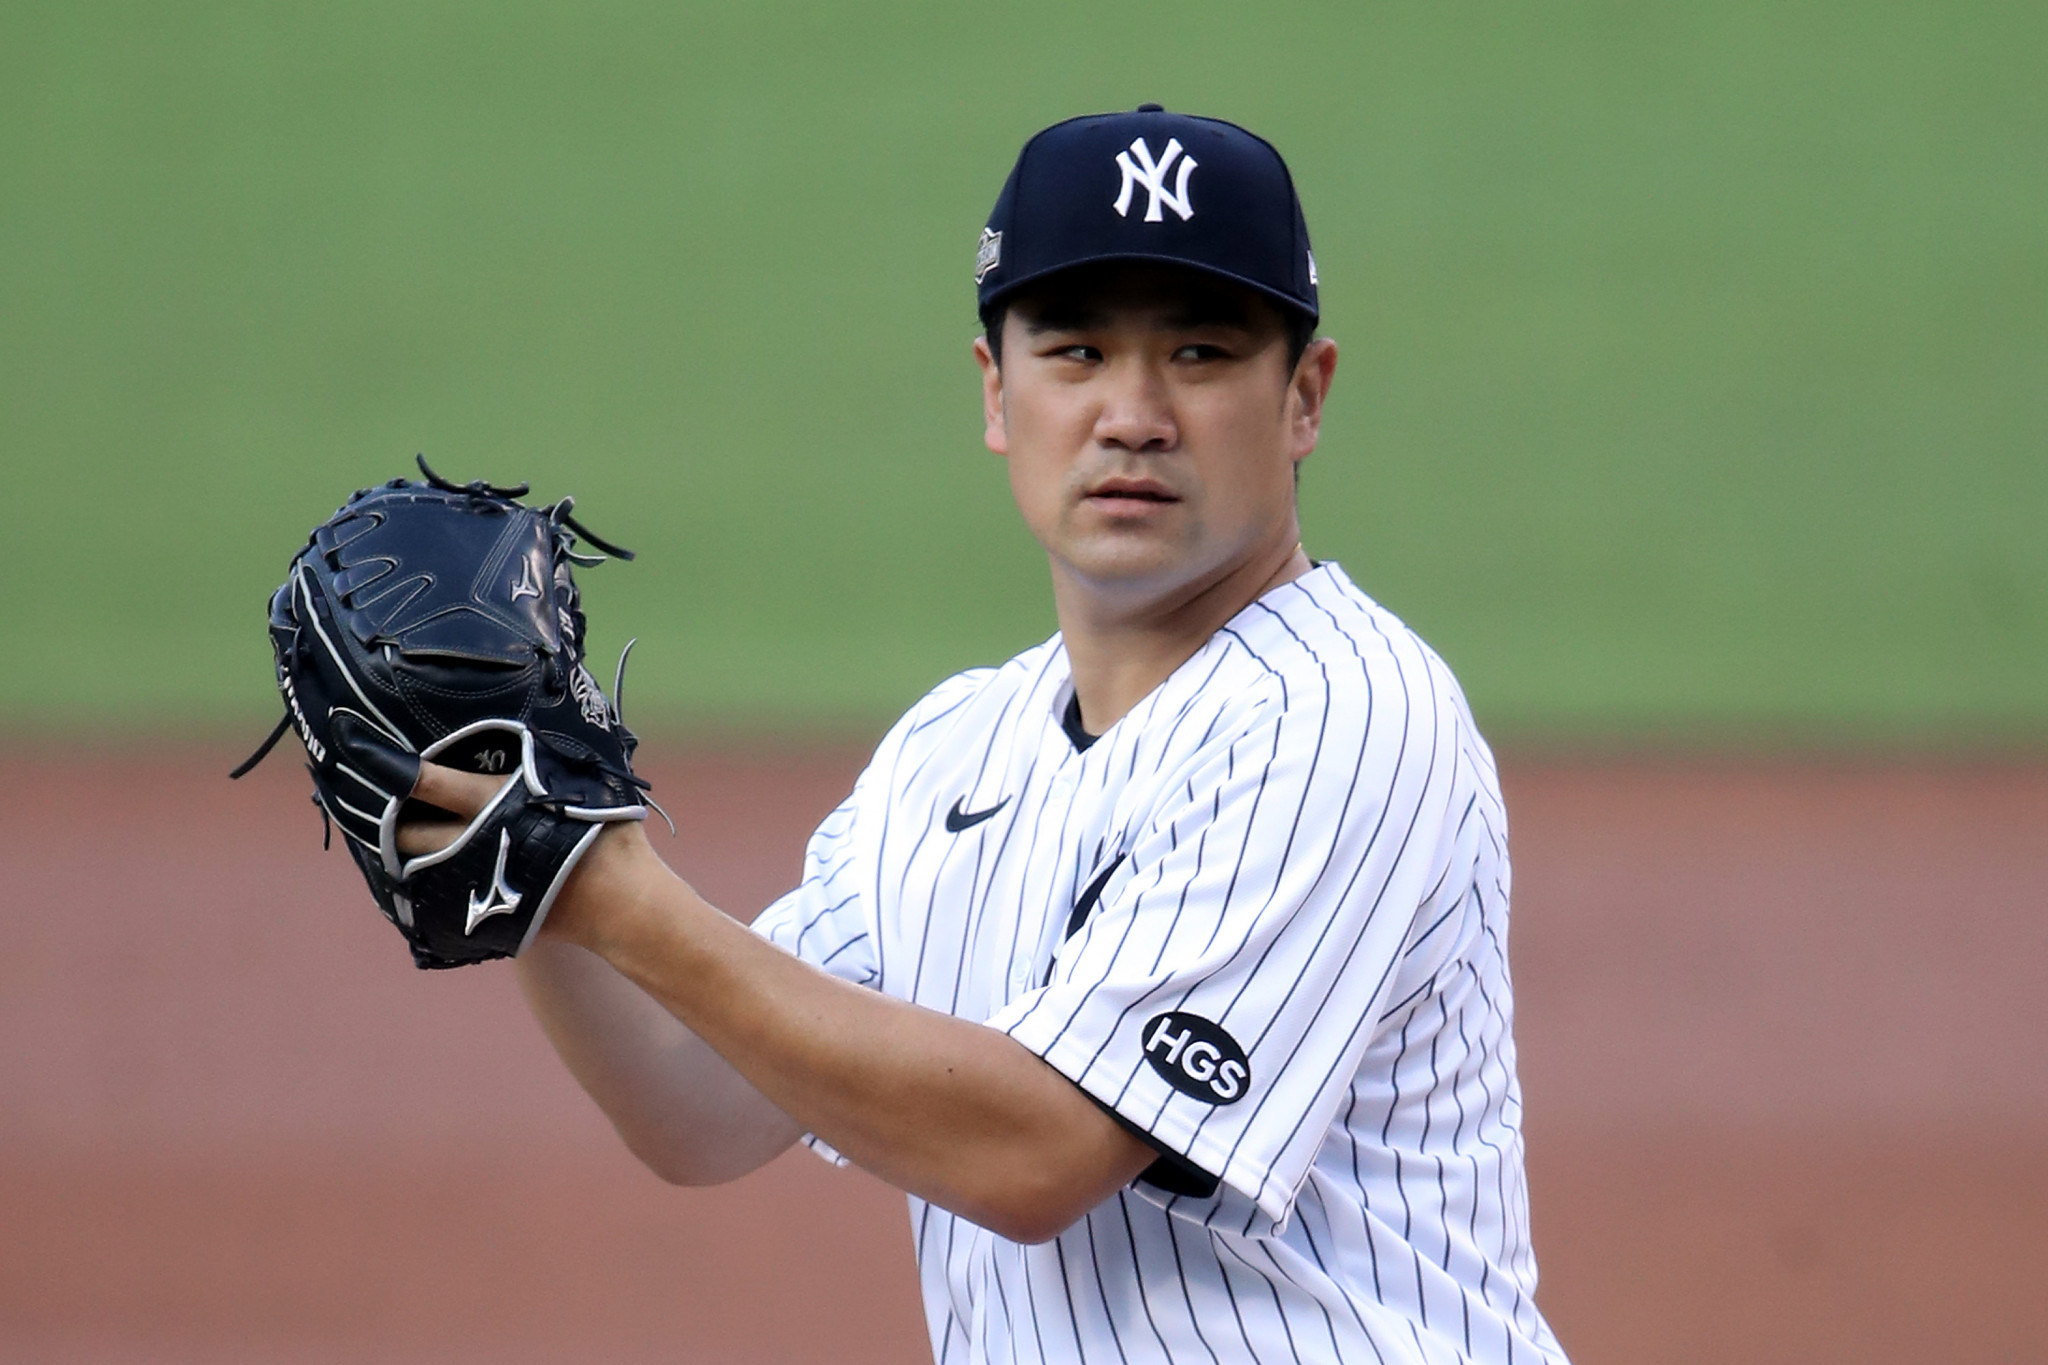 Japanese baseball star Tanaka eligible for Tokyo 2020 after return to domestic league